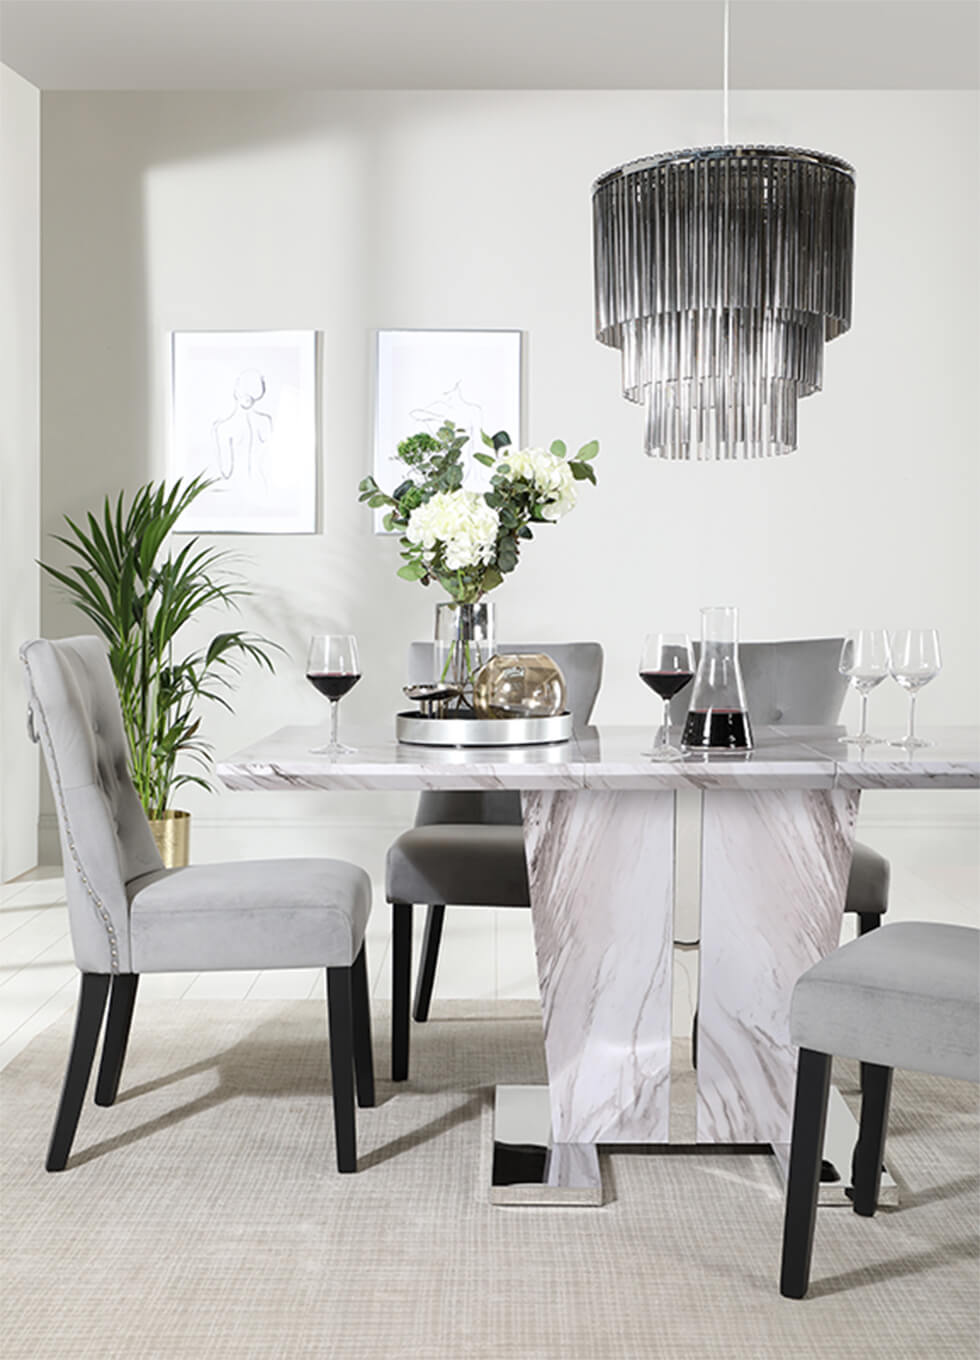 Neutral grey dining room with a grey marble dining table with a pedestal, fringe lamp and indoor plants